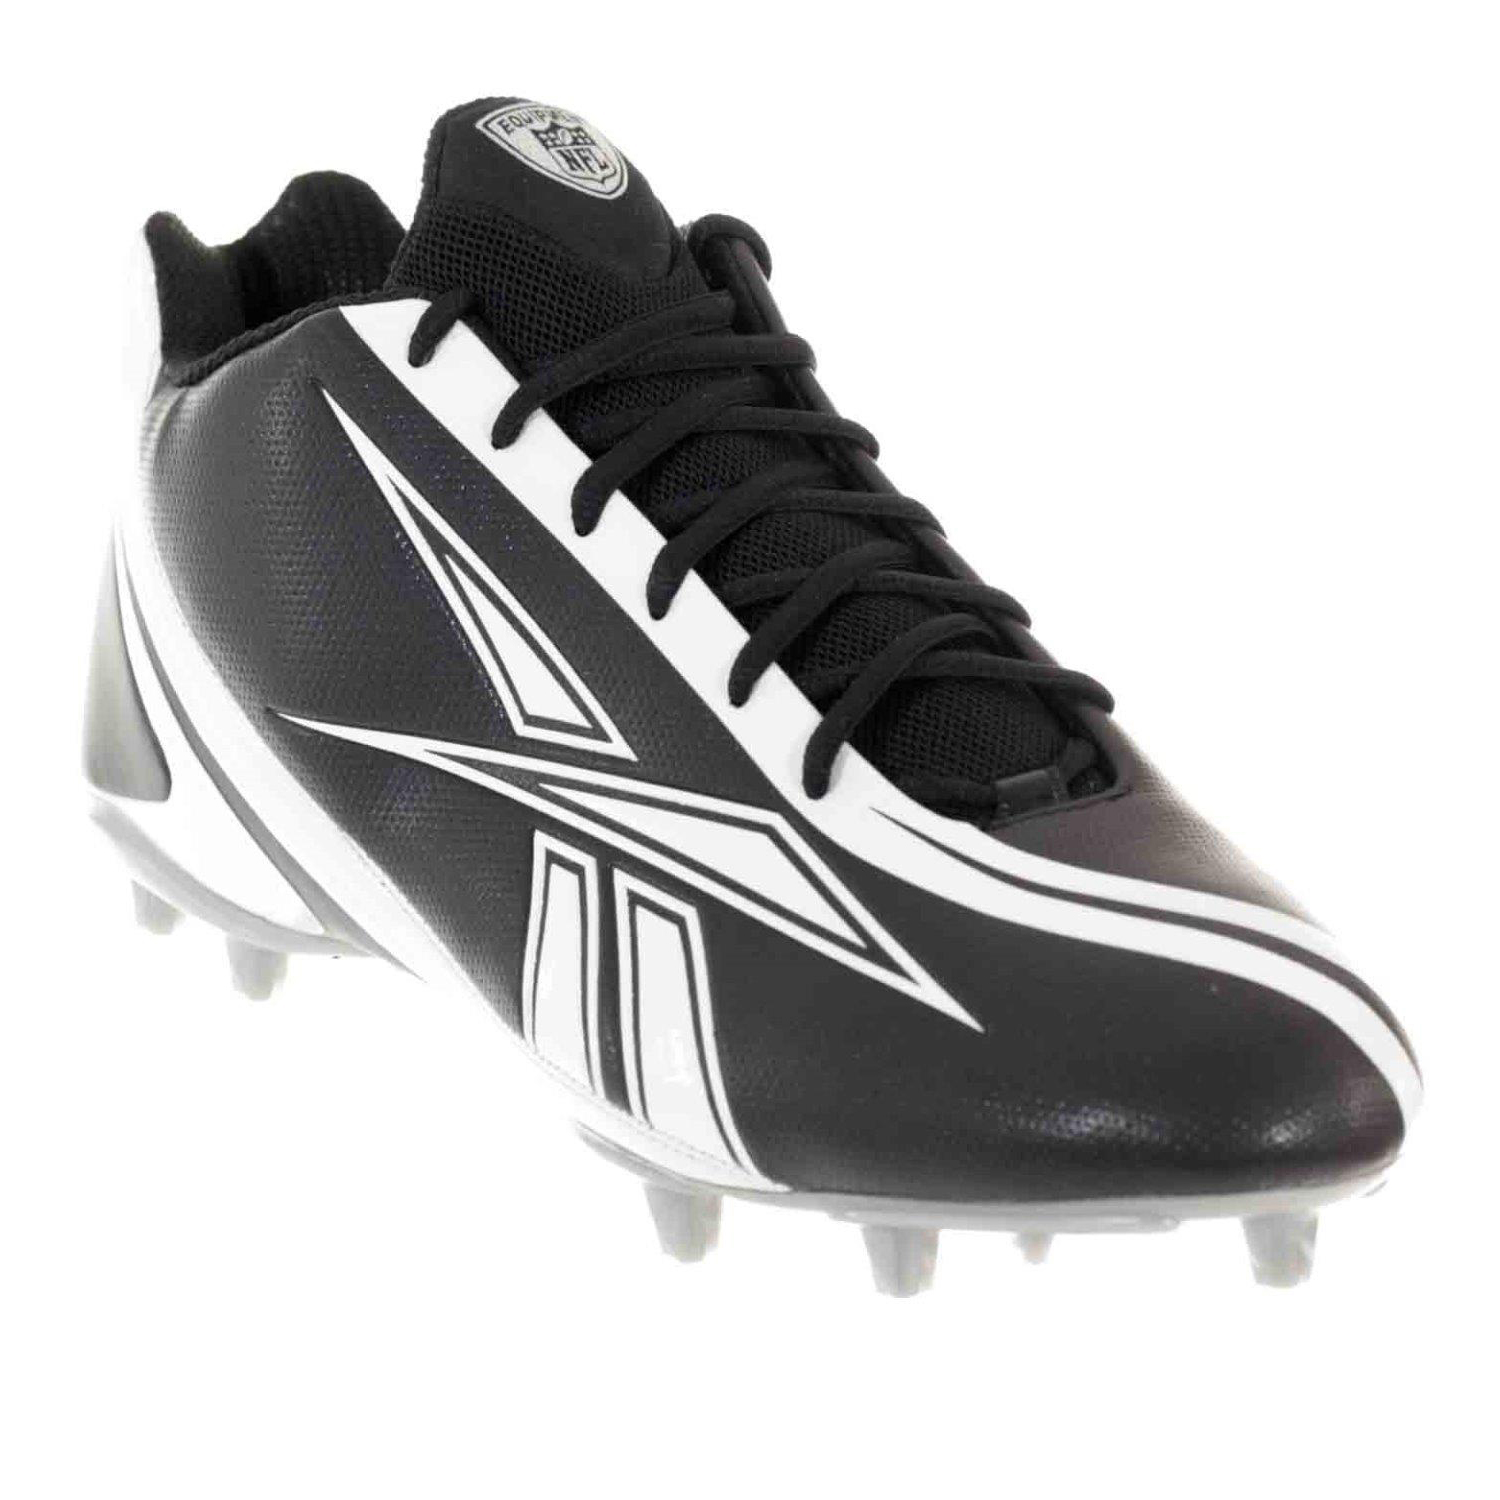 REEBOK PRO BURNER SPEED 5/8 M3 MENS FOOTBALL CLEATS BLACK WHITE 15